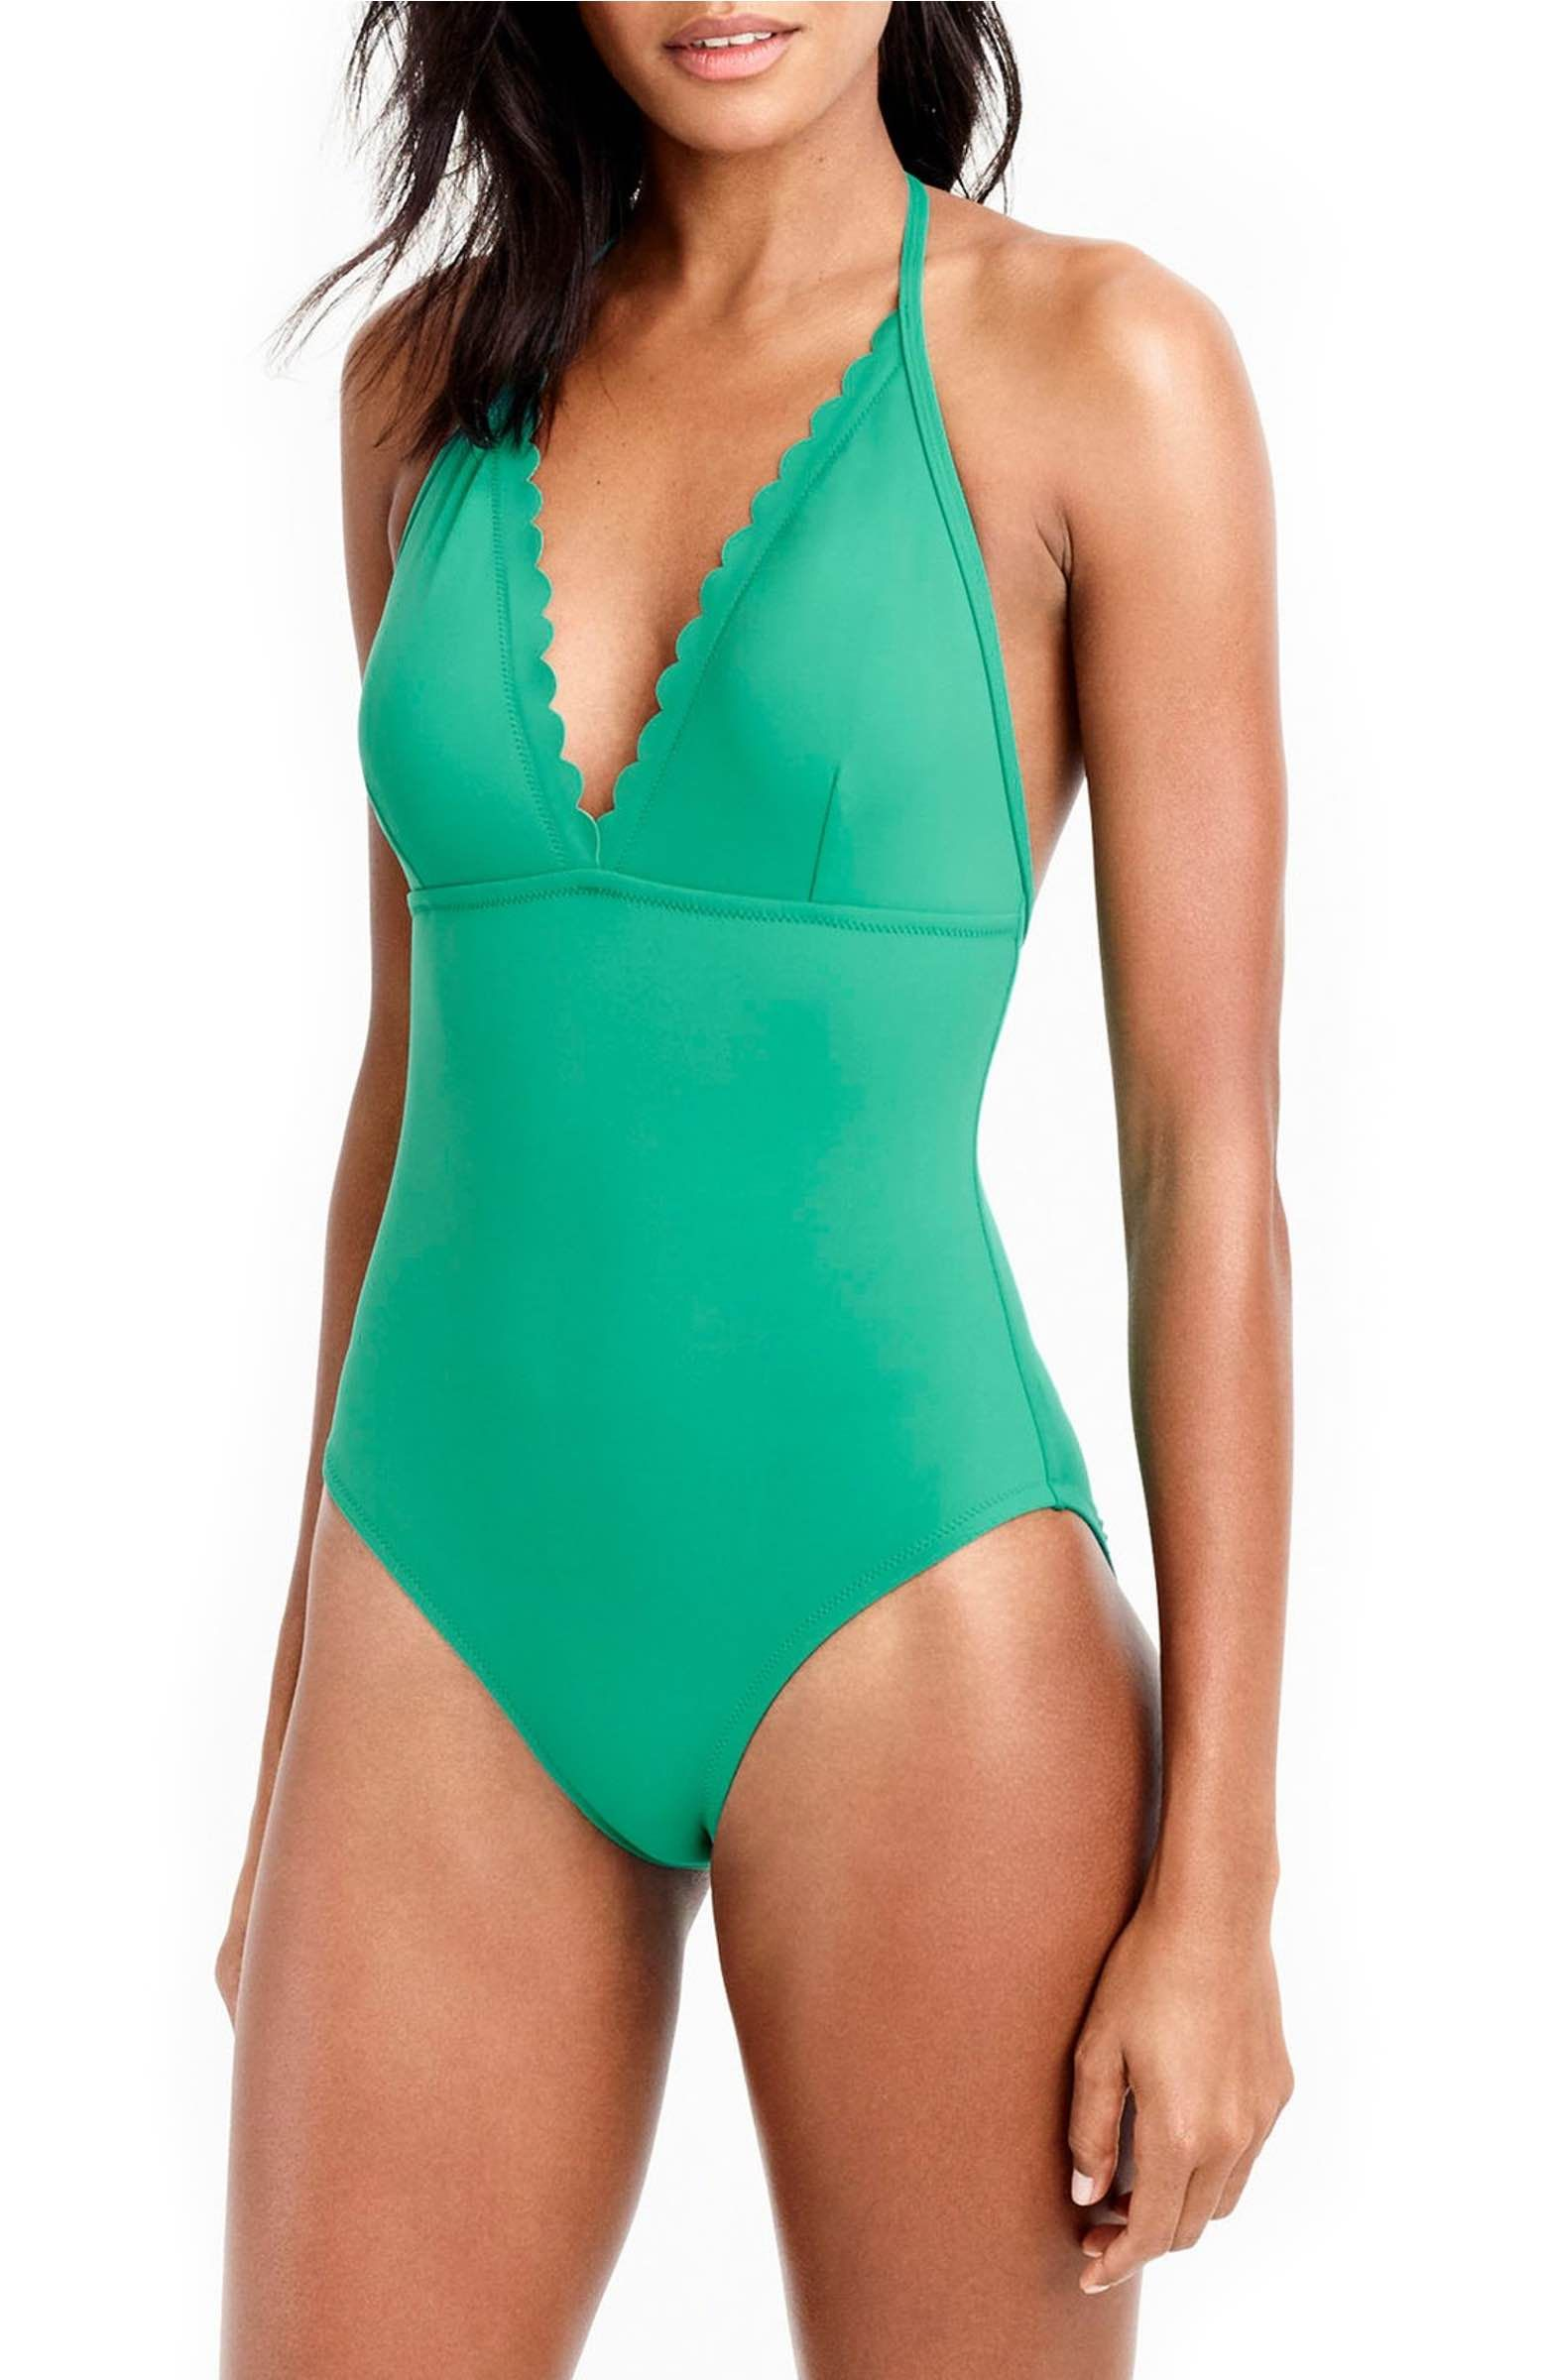 681c26d4b6b Free shipping and returns on J.Crew Scallop One-Piece Swimsuit at Nordstrom.com.  This cute one-piece is crafted of a soft, stretchy matte fabric made in ...